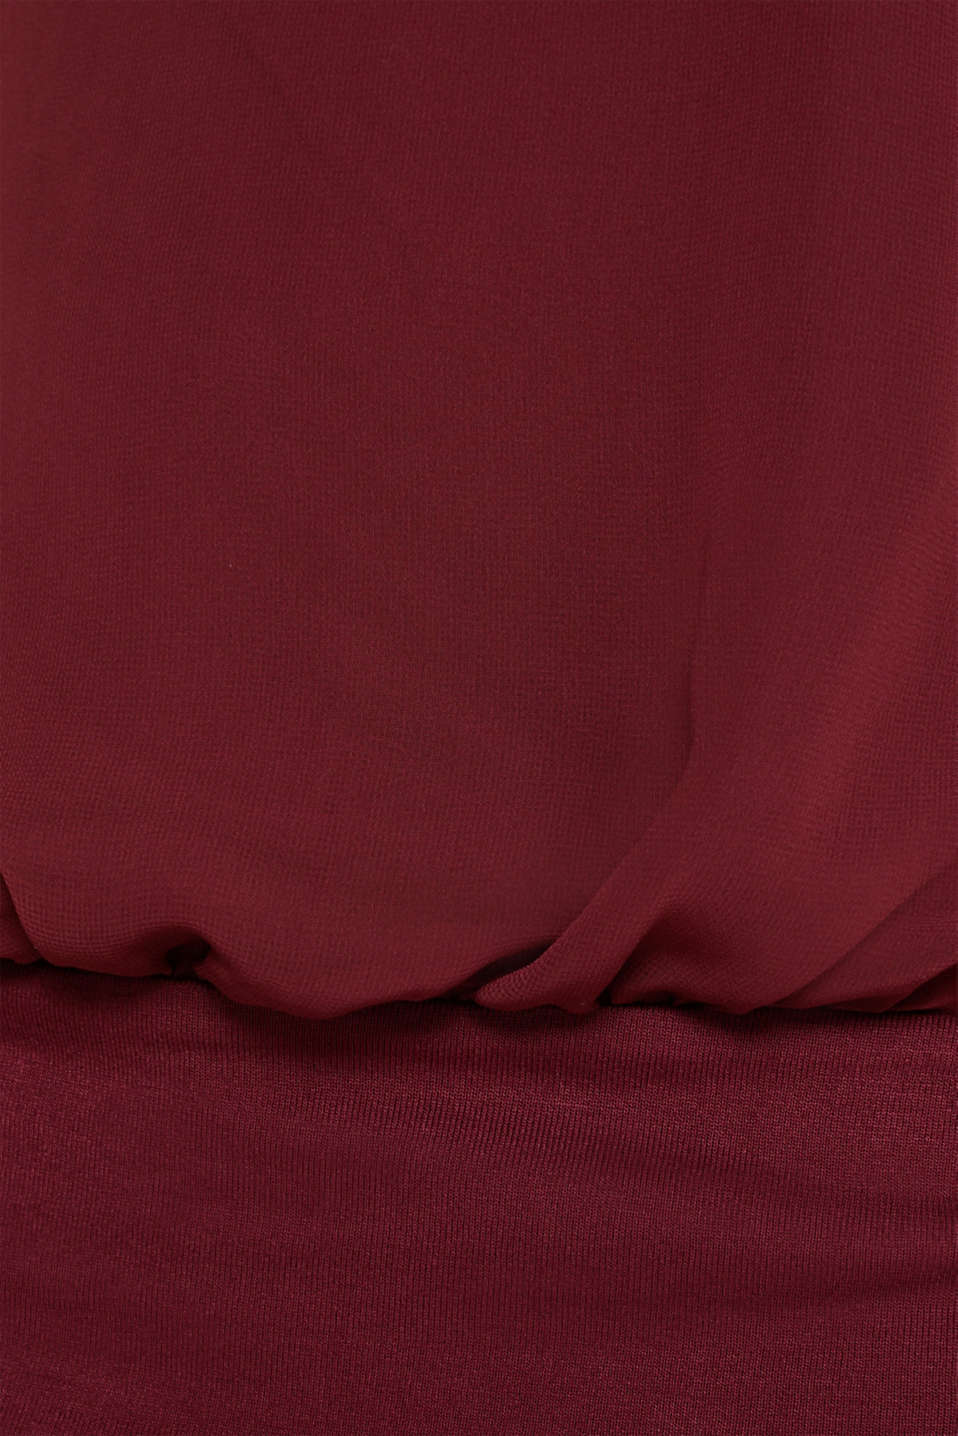 Batwing top made of chiffon/jersey, GARNET RED, detail image number 4